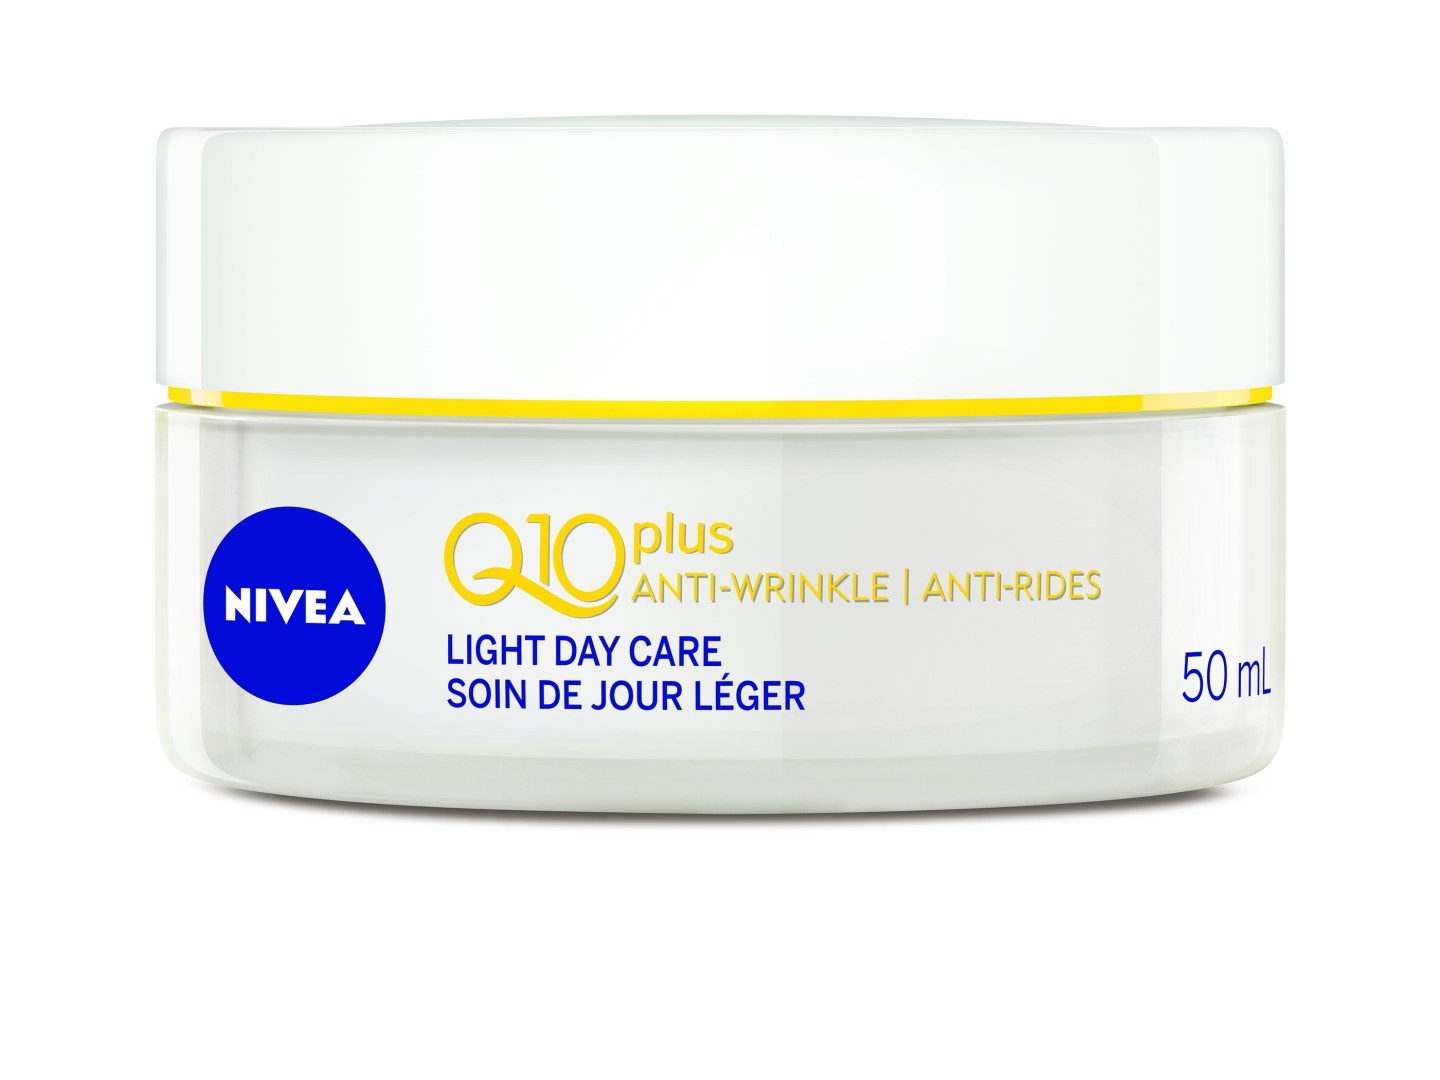 NIVEA Q10 Plus Anti-Wrinkle Light Day Care 50mL_056594867956_Jar.jpg